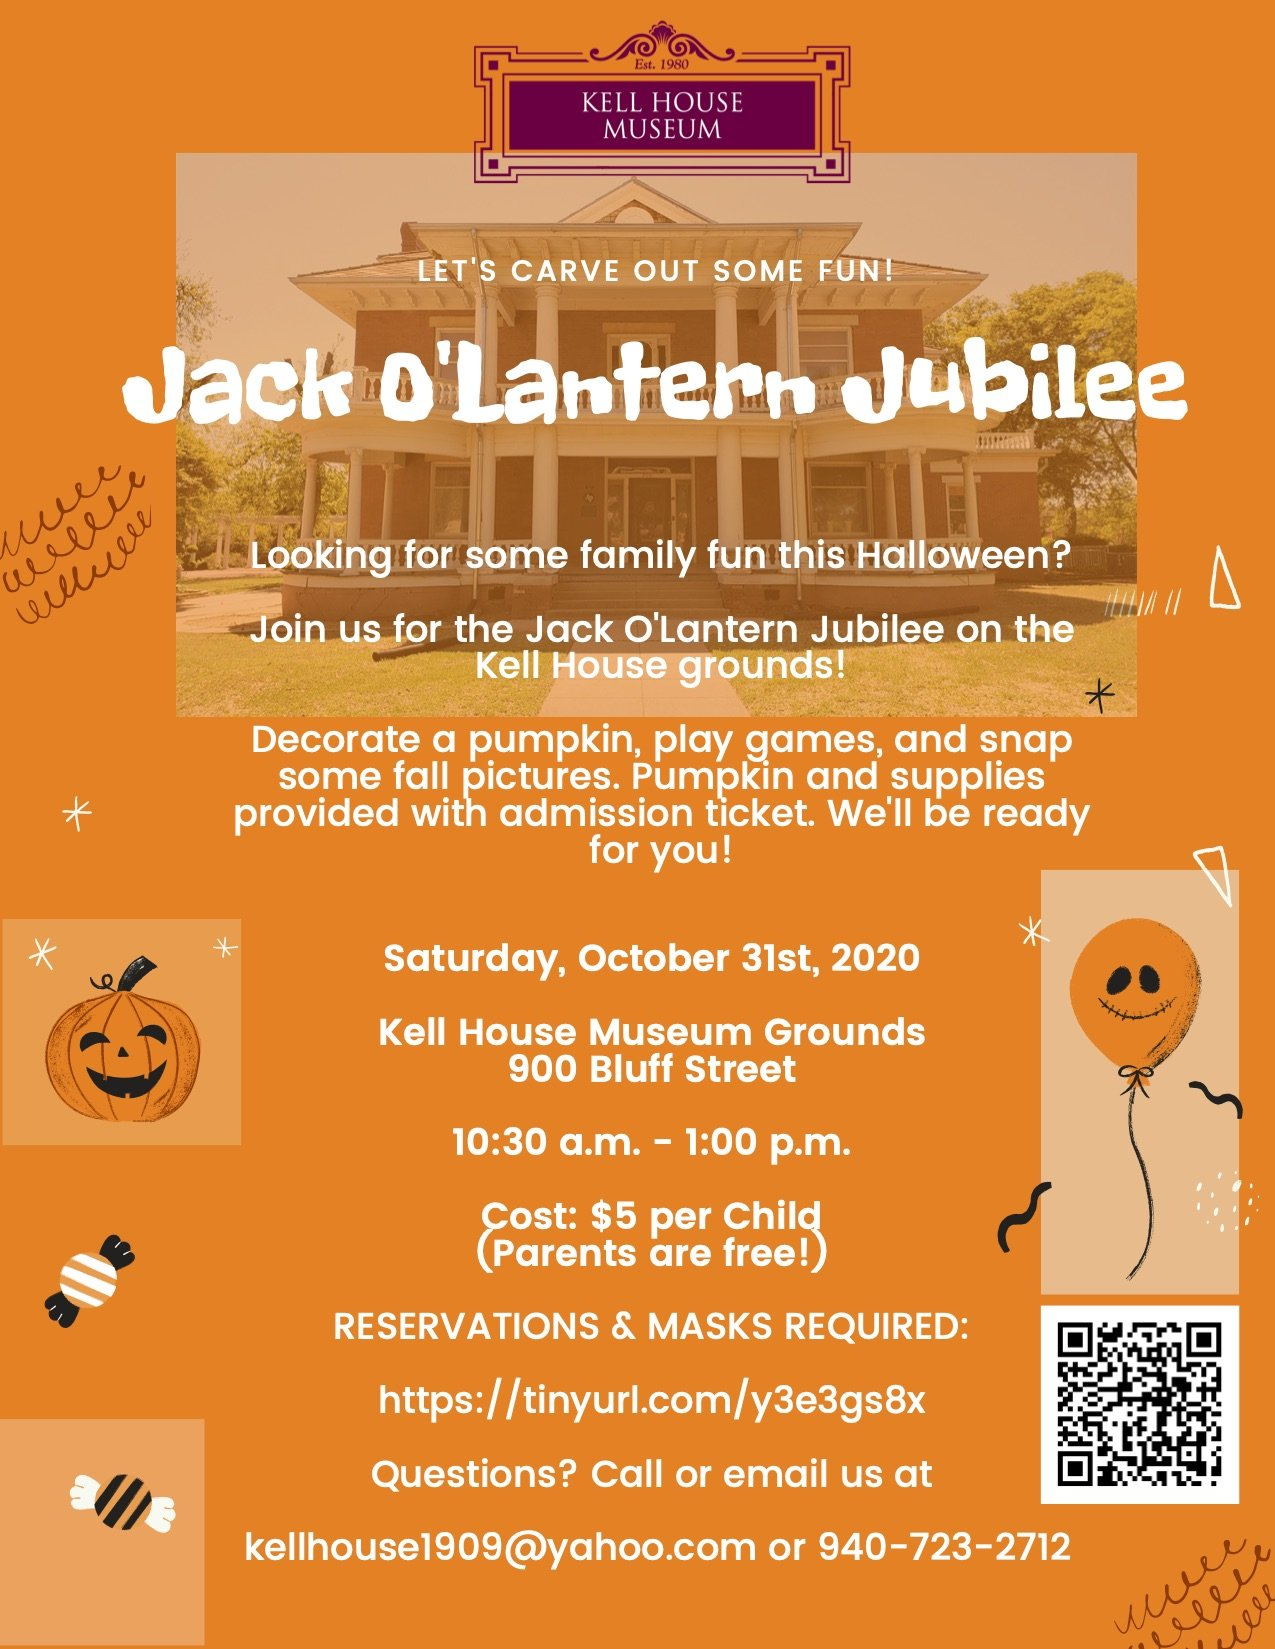 Jack O'Lantern Jubilee at the Kell House @ Kell House Museum